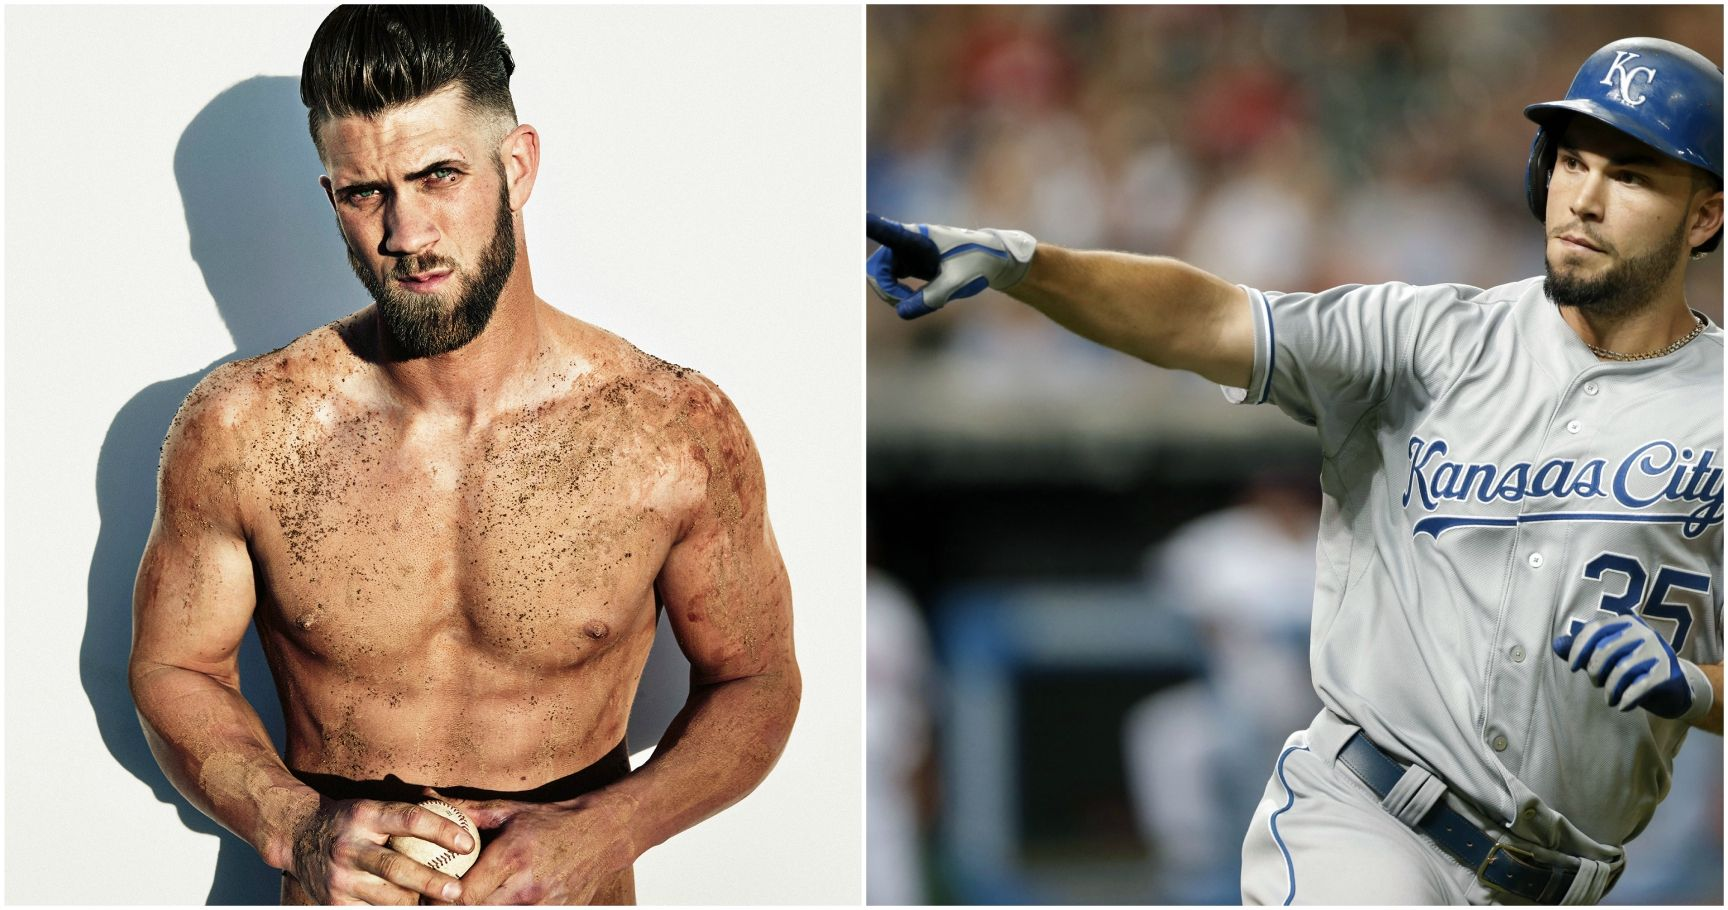 The 11 Sexiest Baseball Players of 2016